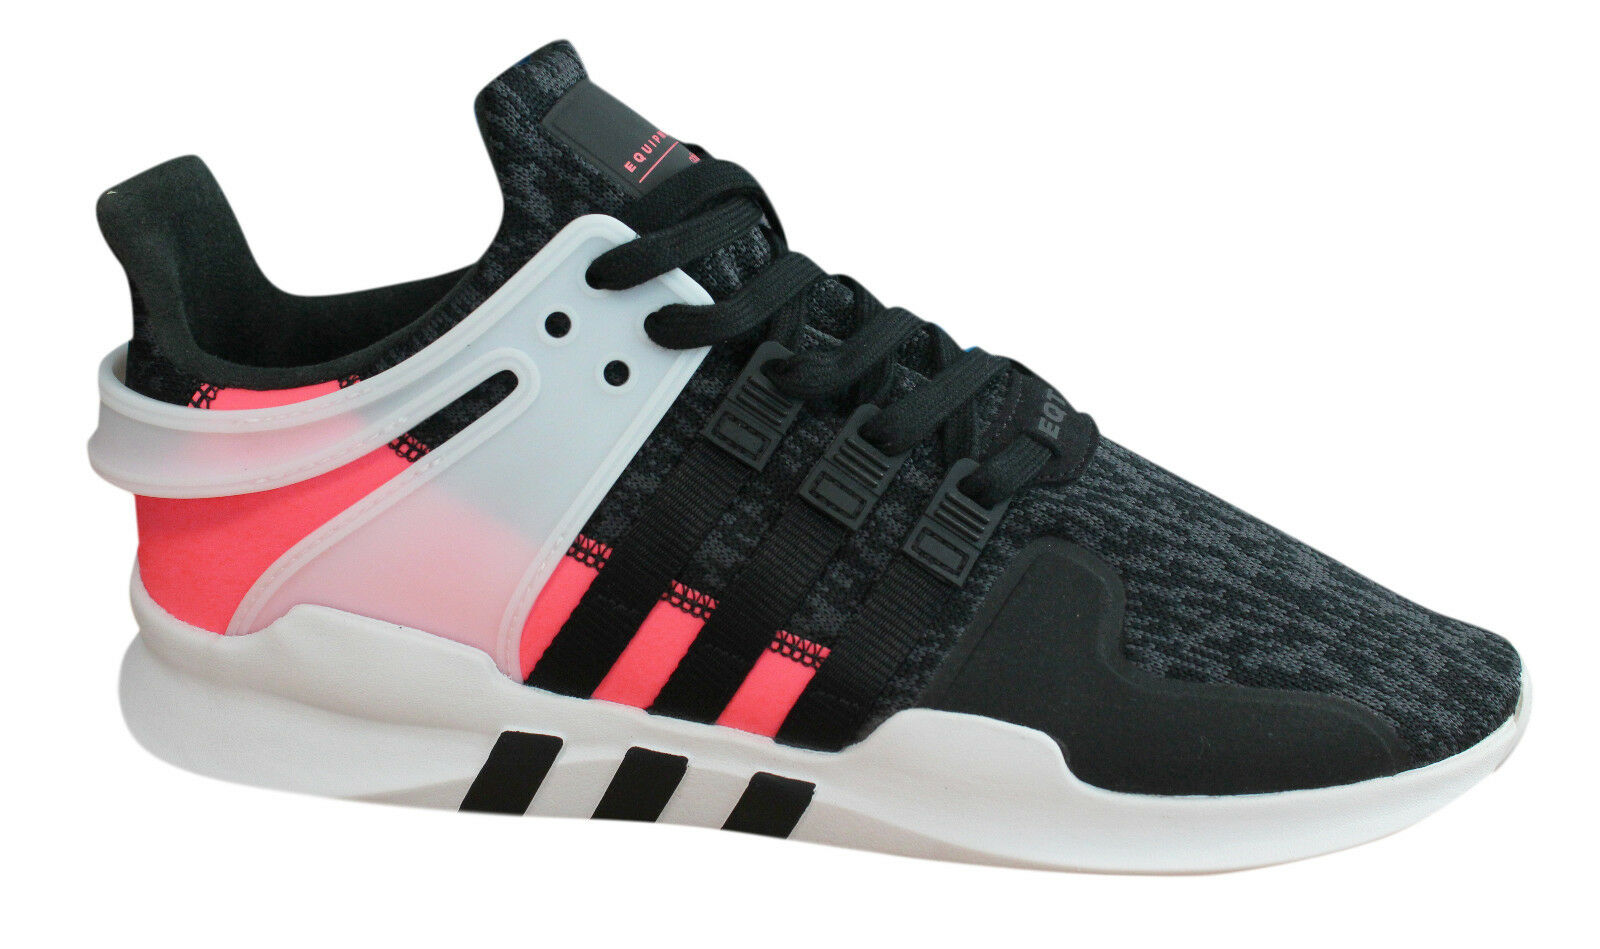 Adidas Originals Equipment Support Advance Uomo Trainers Lace Up BB1302 M17